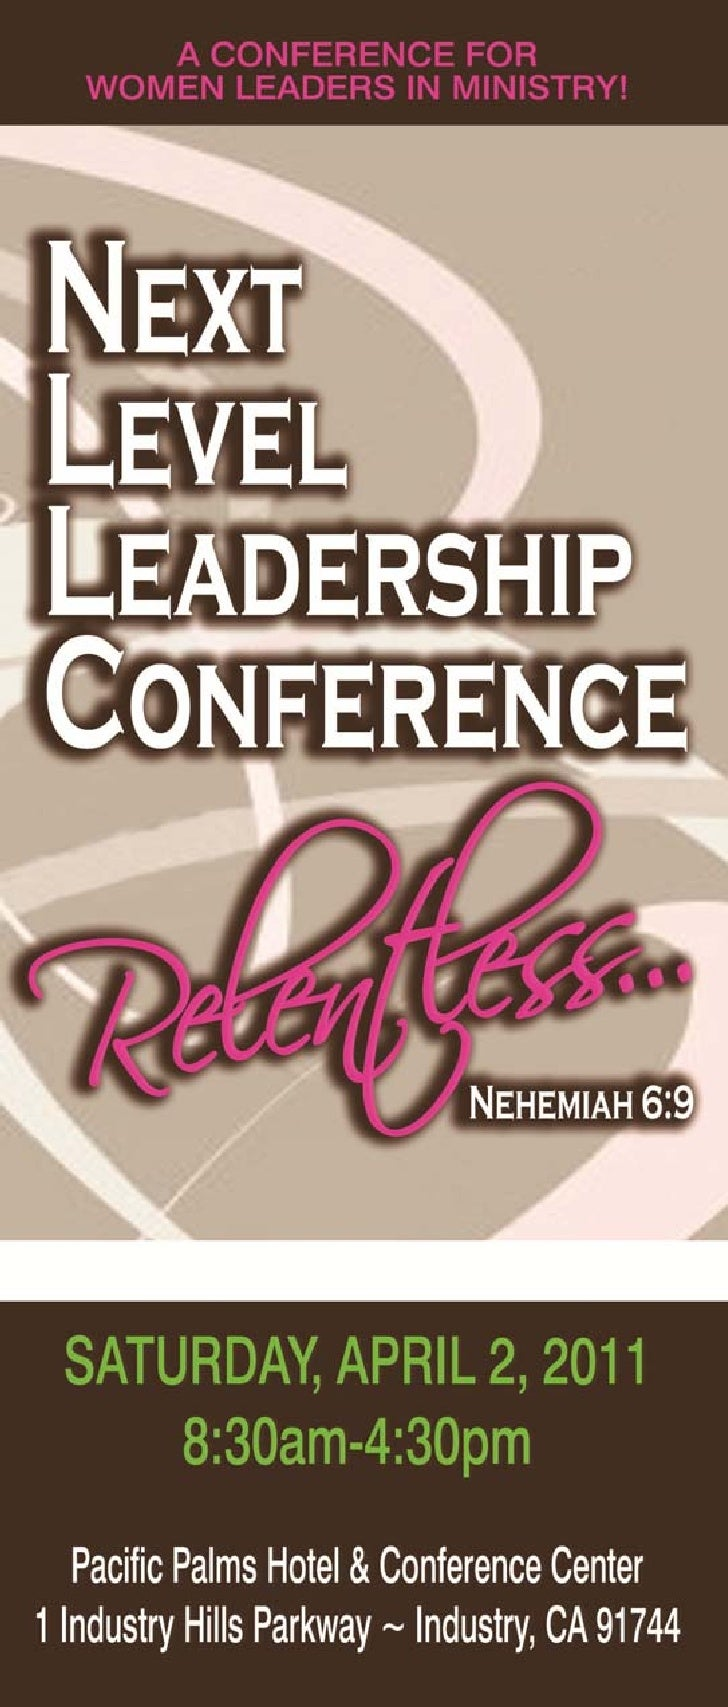 Brochure for Leadership Conference